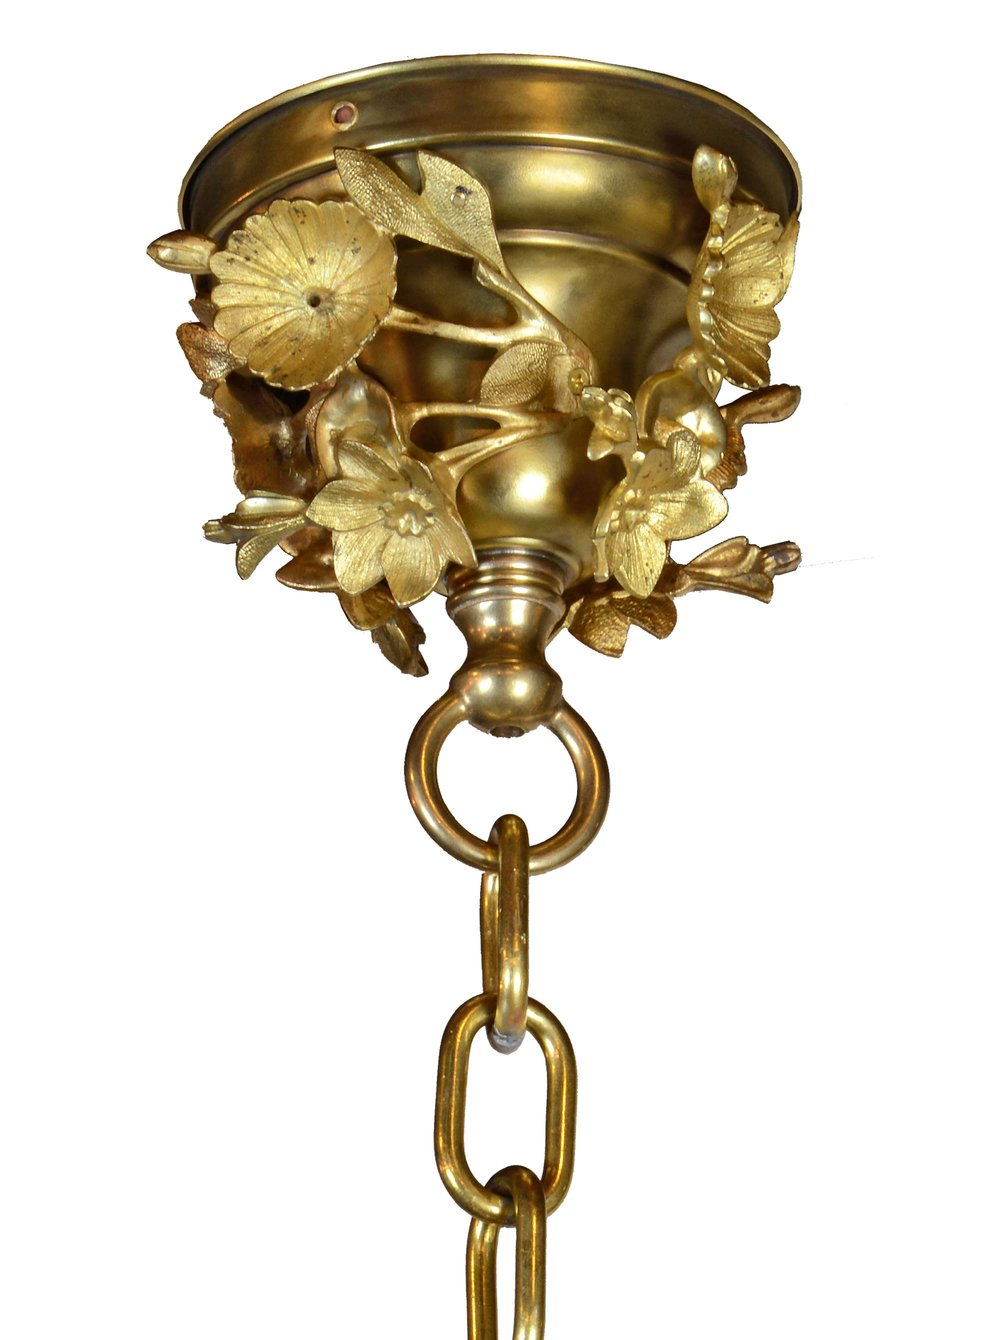 46245-ornate-brass-and-cranberry-glass-fixture-canopy.jpg